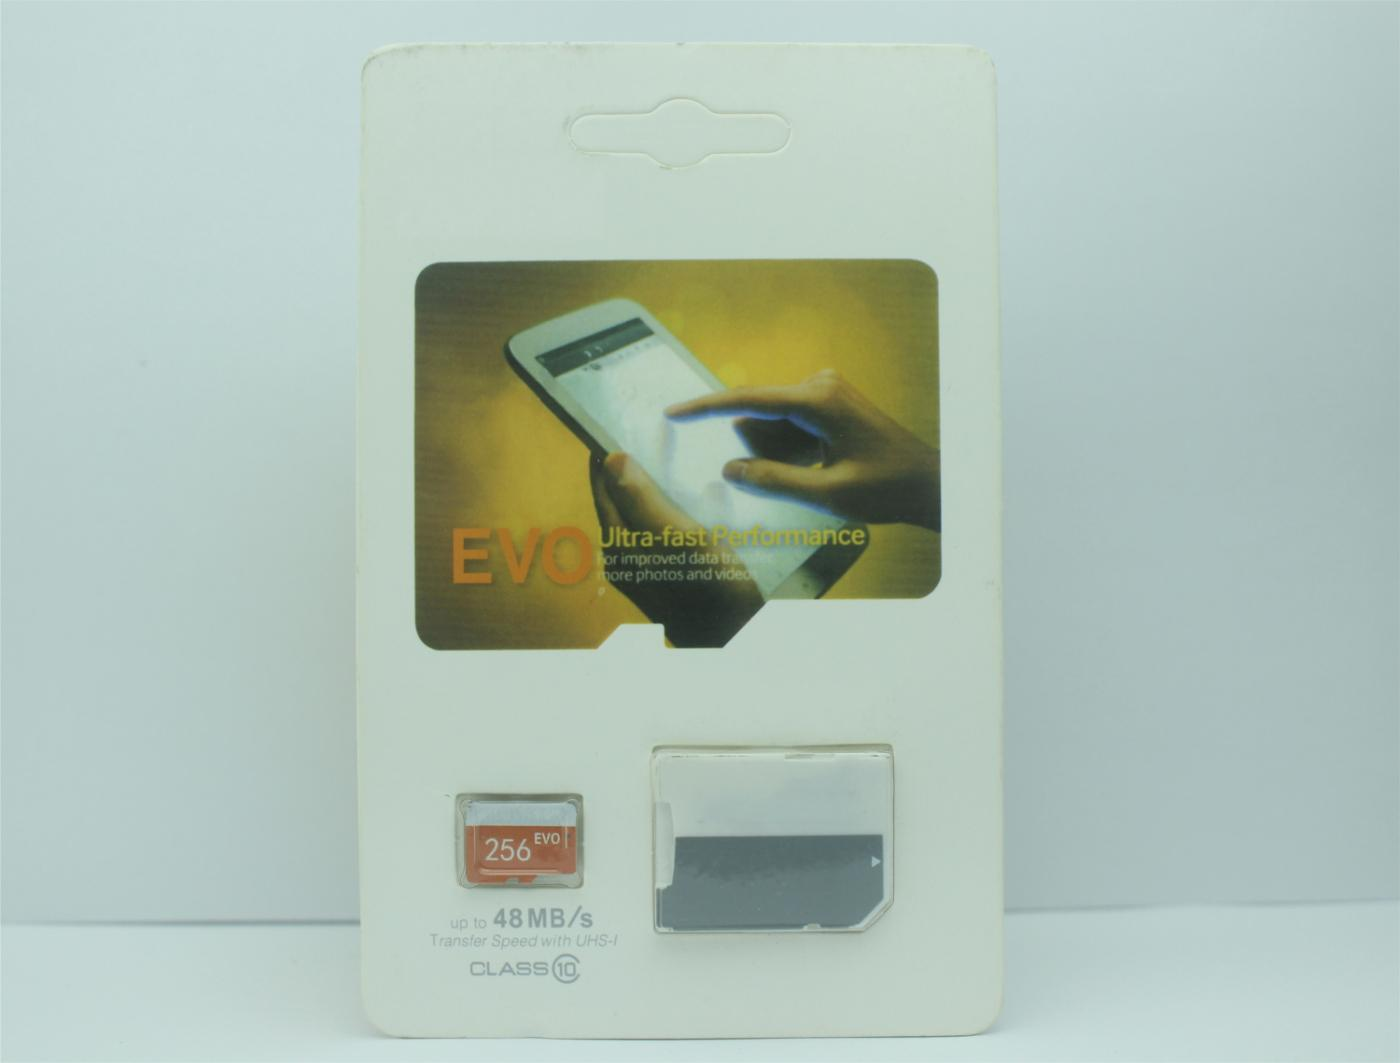 Startling 2018 New Hot Class Evo Micr Sd Card Microsd Tfmemory Card Flash Sd Adapter Retail Package 2018 2018 New Hot Class Evo Micr Sd Card How Much Video Can 32gb H Canon 5d How Much Video Can 32gb dpreview How Much Video Can 32gb Hold